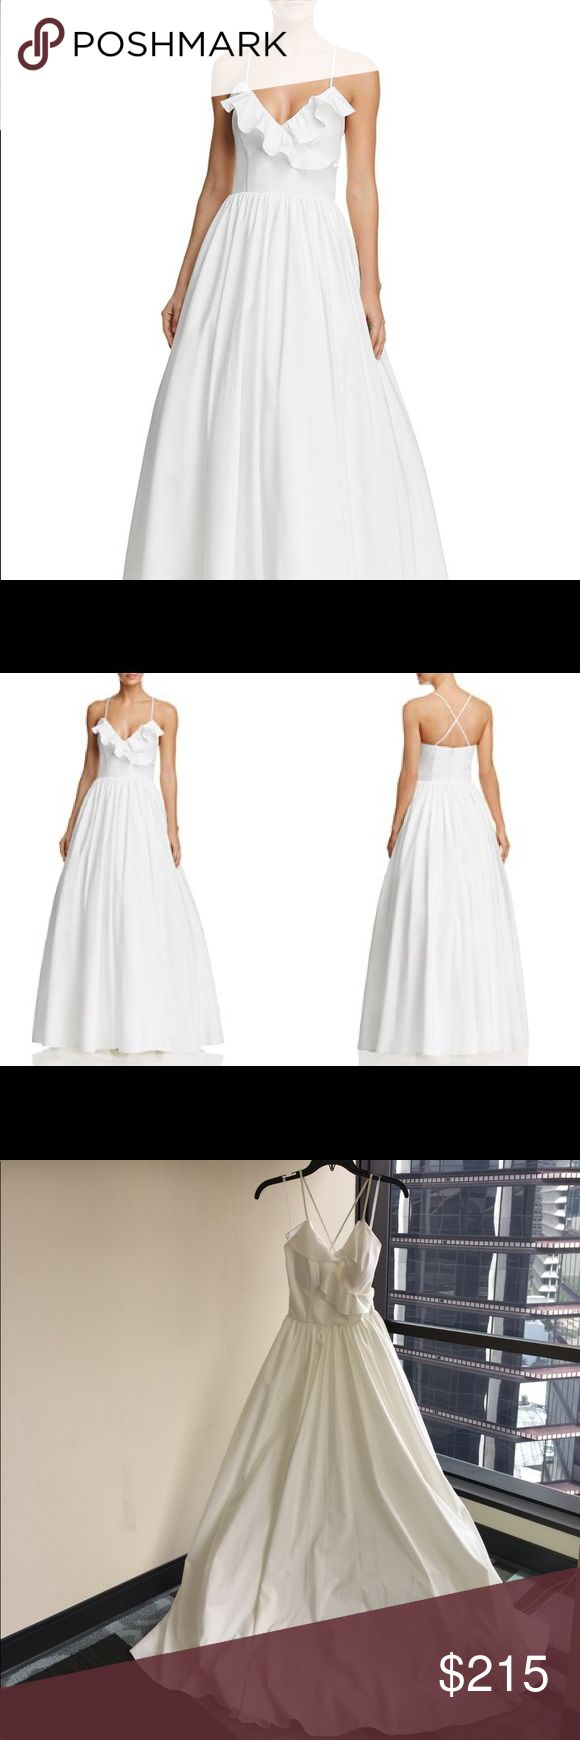 """Avery G white ruffle gown - excellent condition White ruffle ball gown perfect as a wedding dress. Worn once for photo shoot. Small stains on the bottom of the dress as shown on photos. Beautiful silhouette, lightweight and simple ruffle embellishment. The height on the model is 5'10"""", A cup size, waist 32"""". Size 0. There is a little padding by the bust area. Best worn with silicon adhesive pasties. Smoke free home. Cross-back strap, full skirt, tulle underlay. Dry clean. Avery G  Dresses…"""